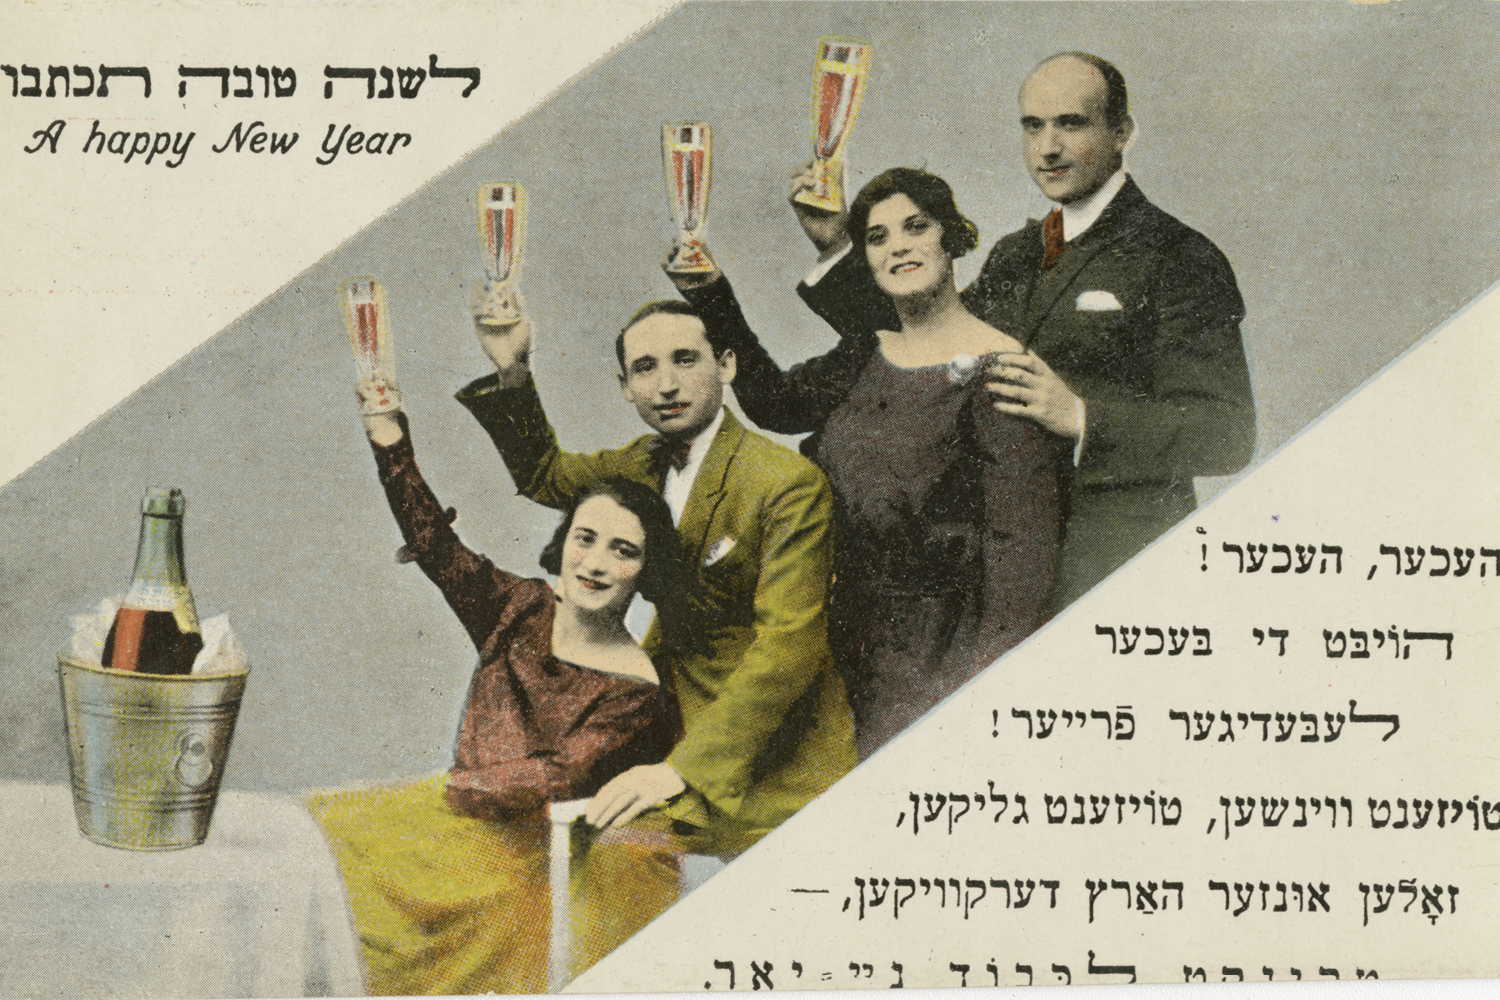 Illustration of men and women cheering to the New Year holiday. early 1900s